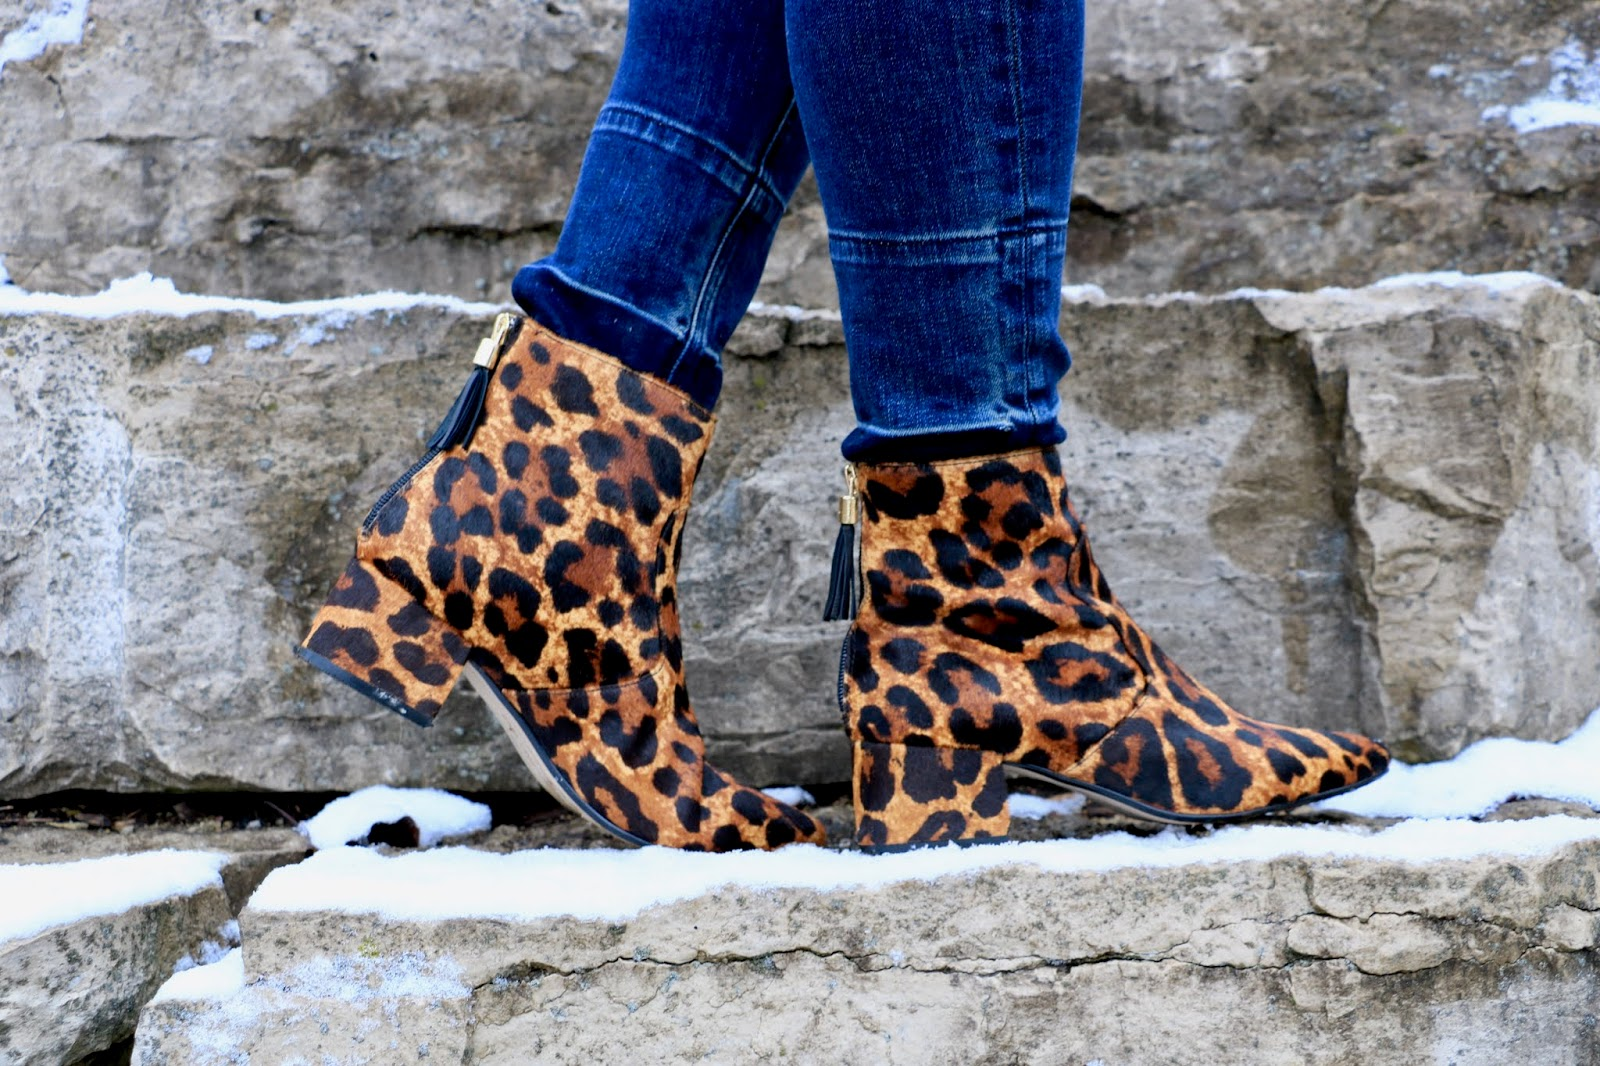 Nyc fashion blogger Kathleen Harper wearing Karl Lagerfeld leopard boots